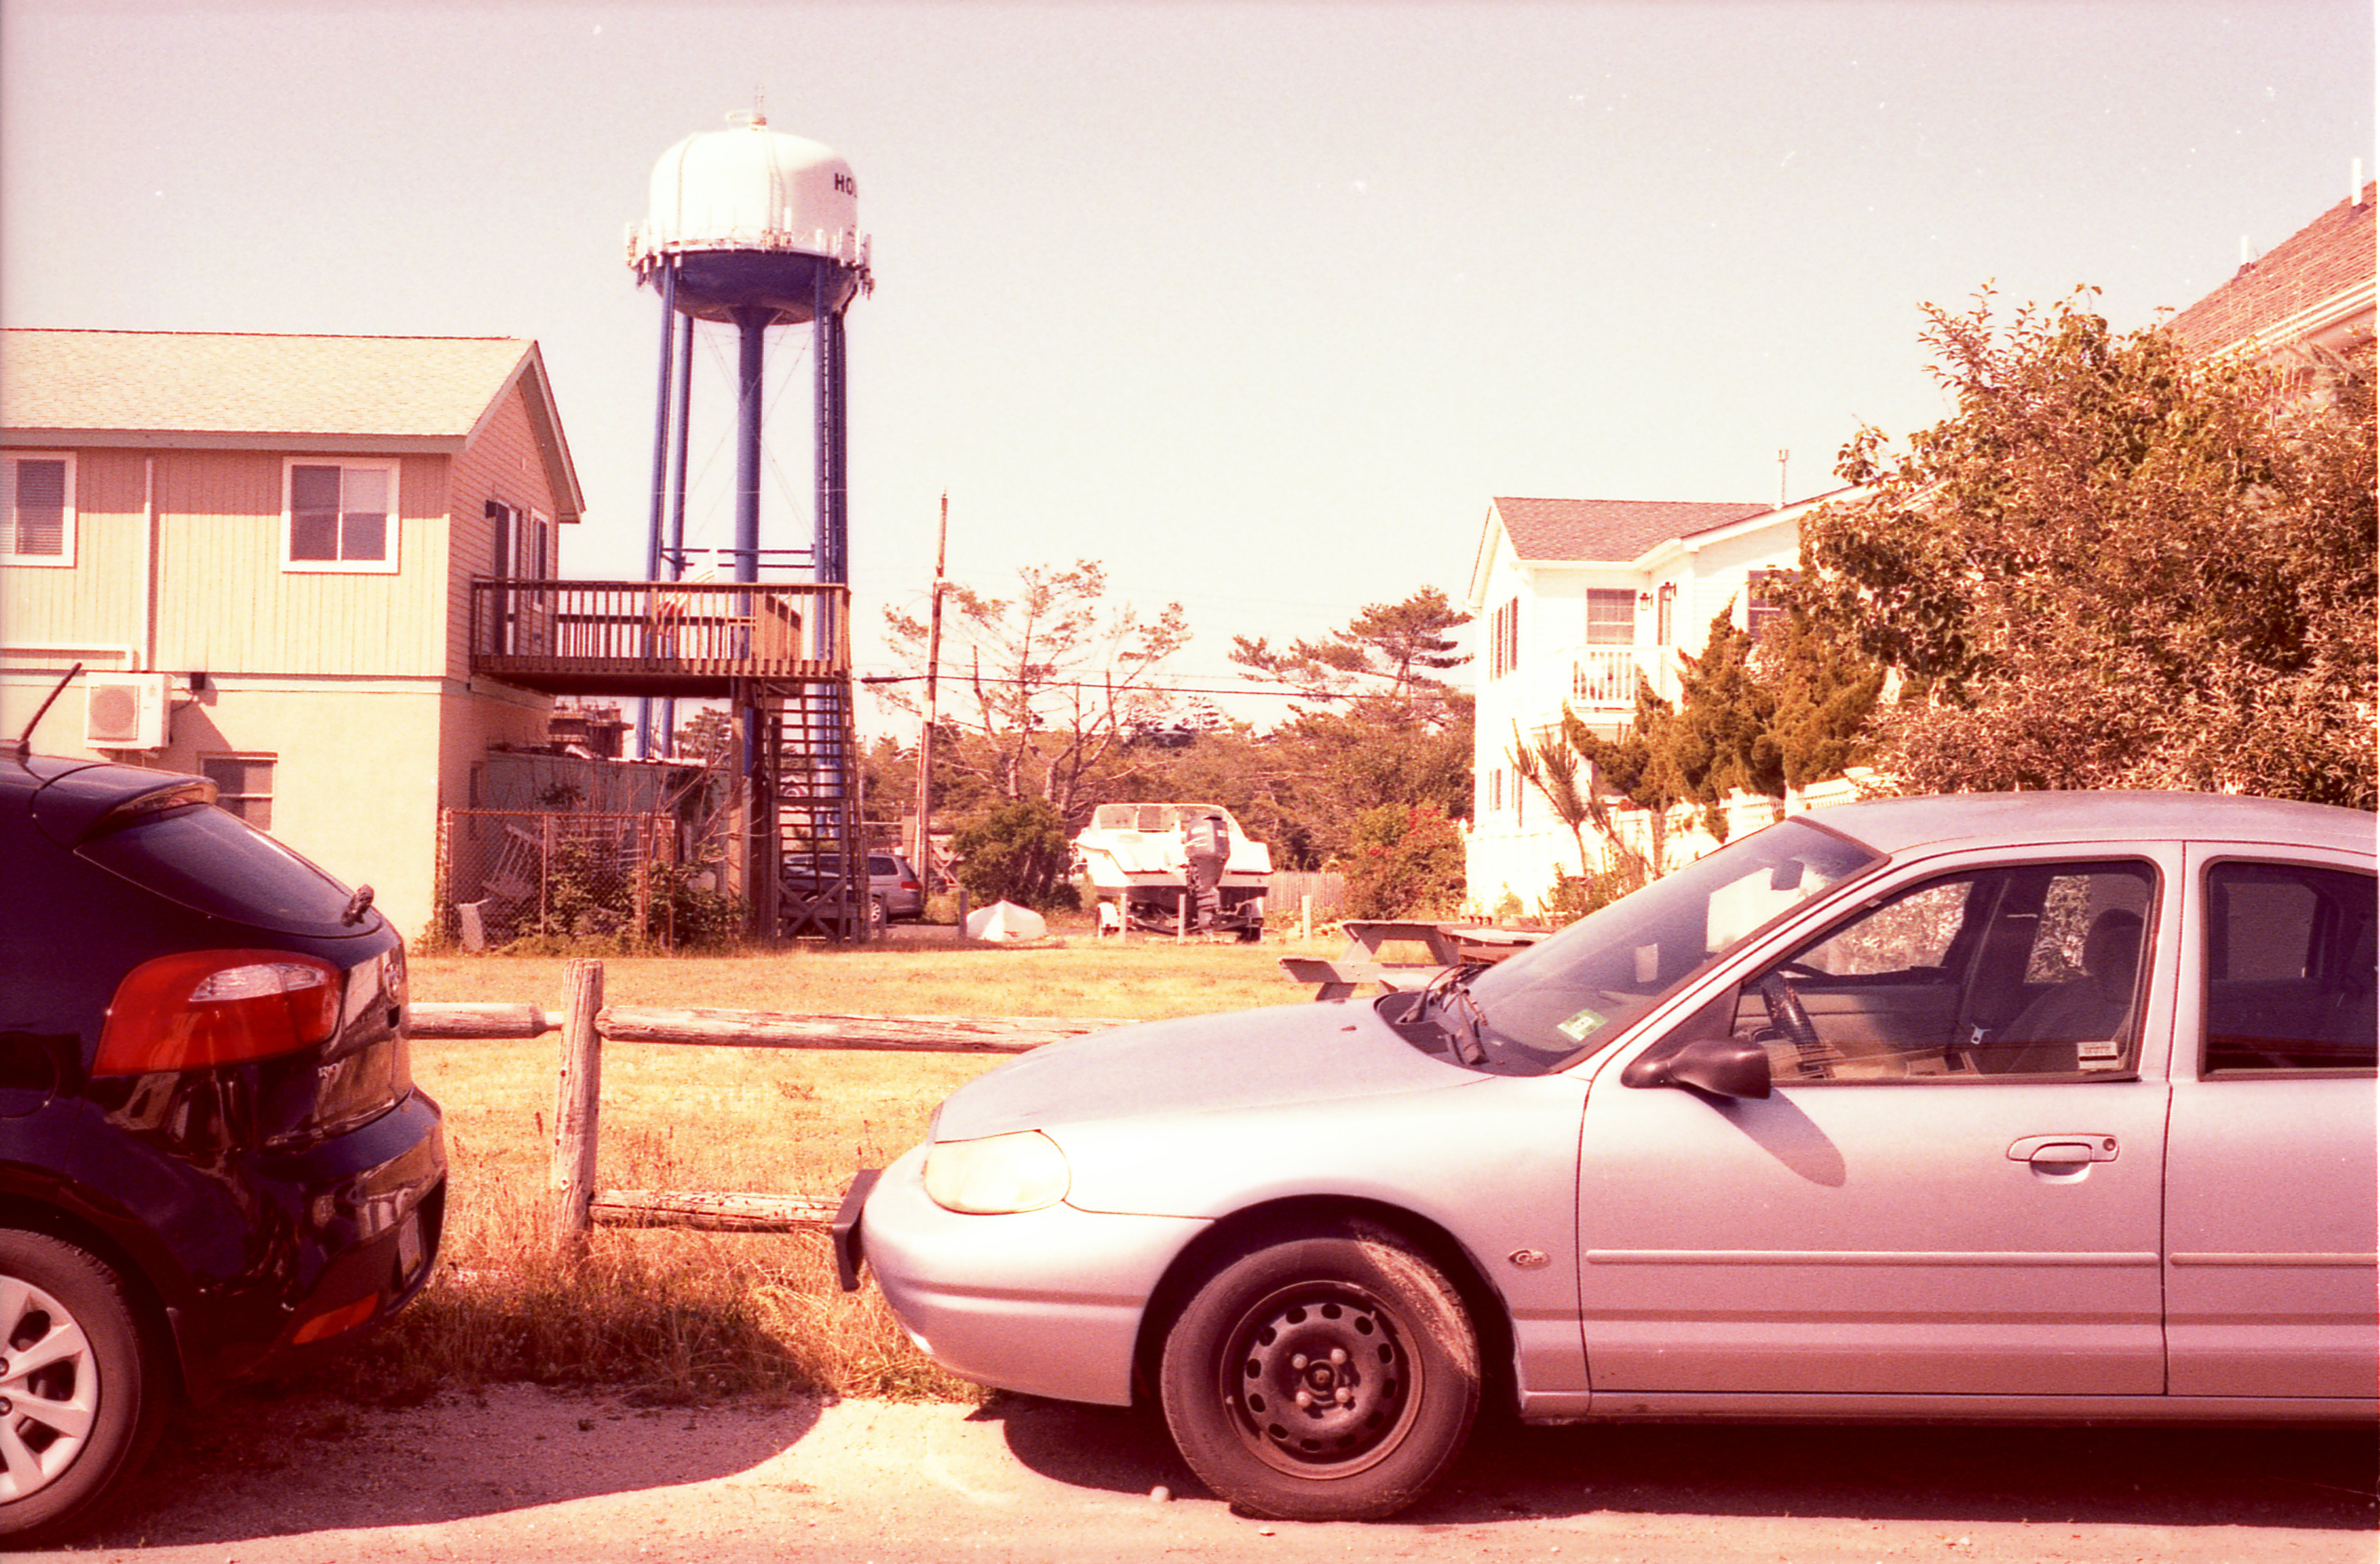 LBI summer on my Pentax point-and-shoot 35mm film camera. Kodak film developed and scanned at home.